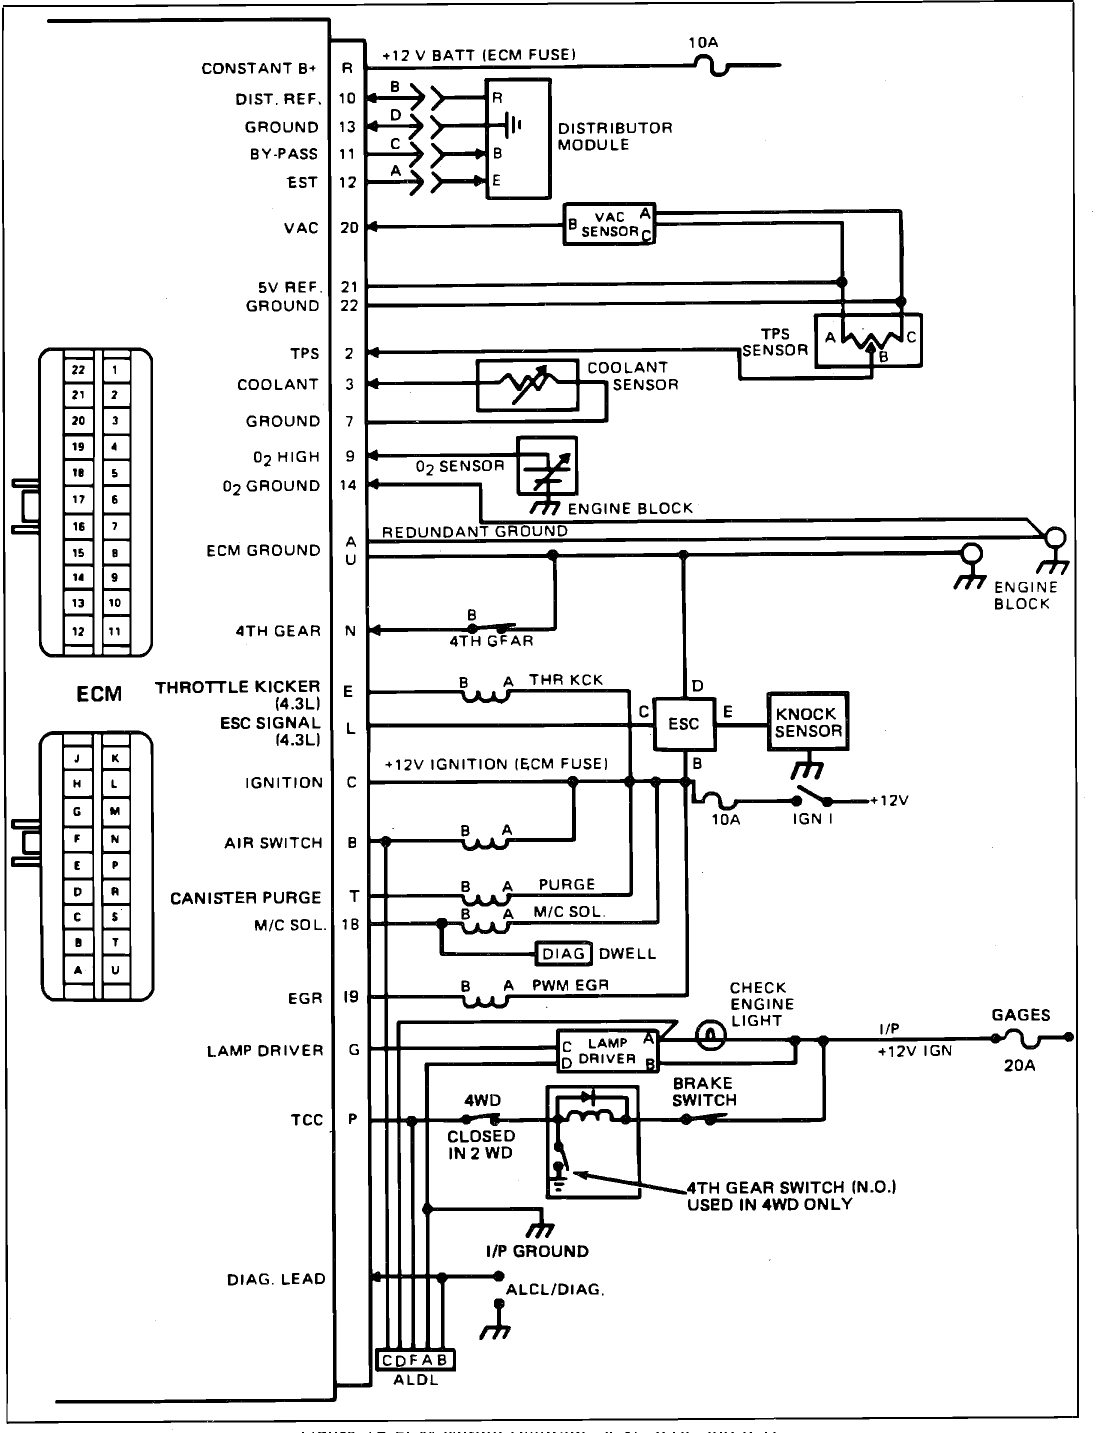 hight resolution of chevrolet wiring diagram 1989 simple wiring diagrams chevrolet key fob programming 1986 chevrolet wiring diagram